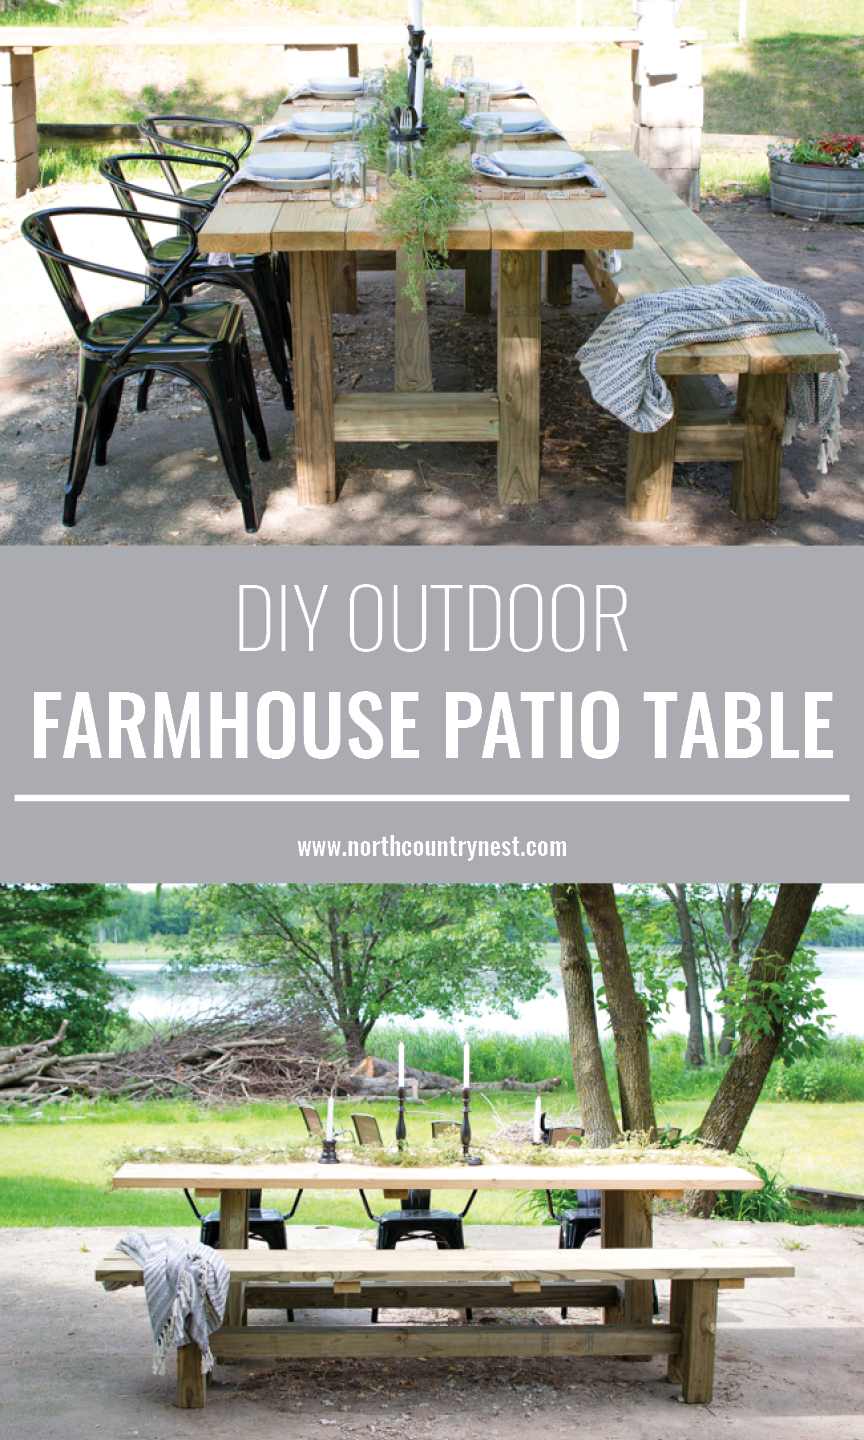 diy outdoor farmhouse table. Check Out This Quick And Easy Tutorial On How To Make An Outdoor Farmhouse Patio Table Diy U